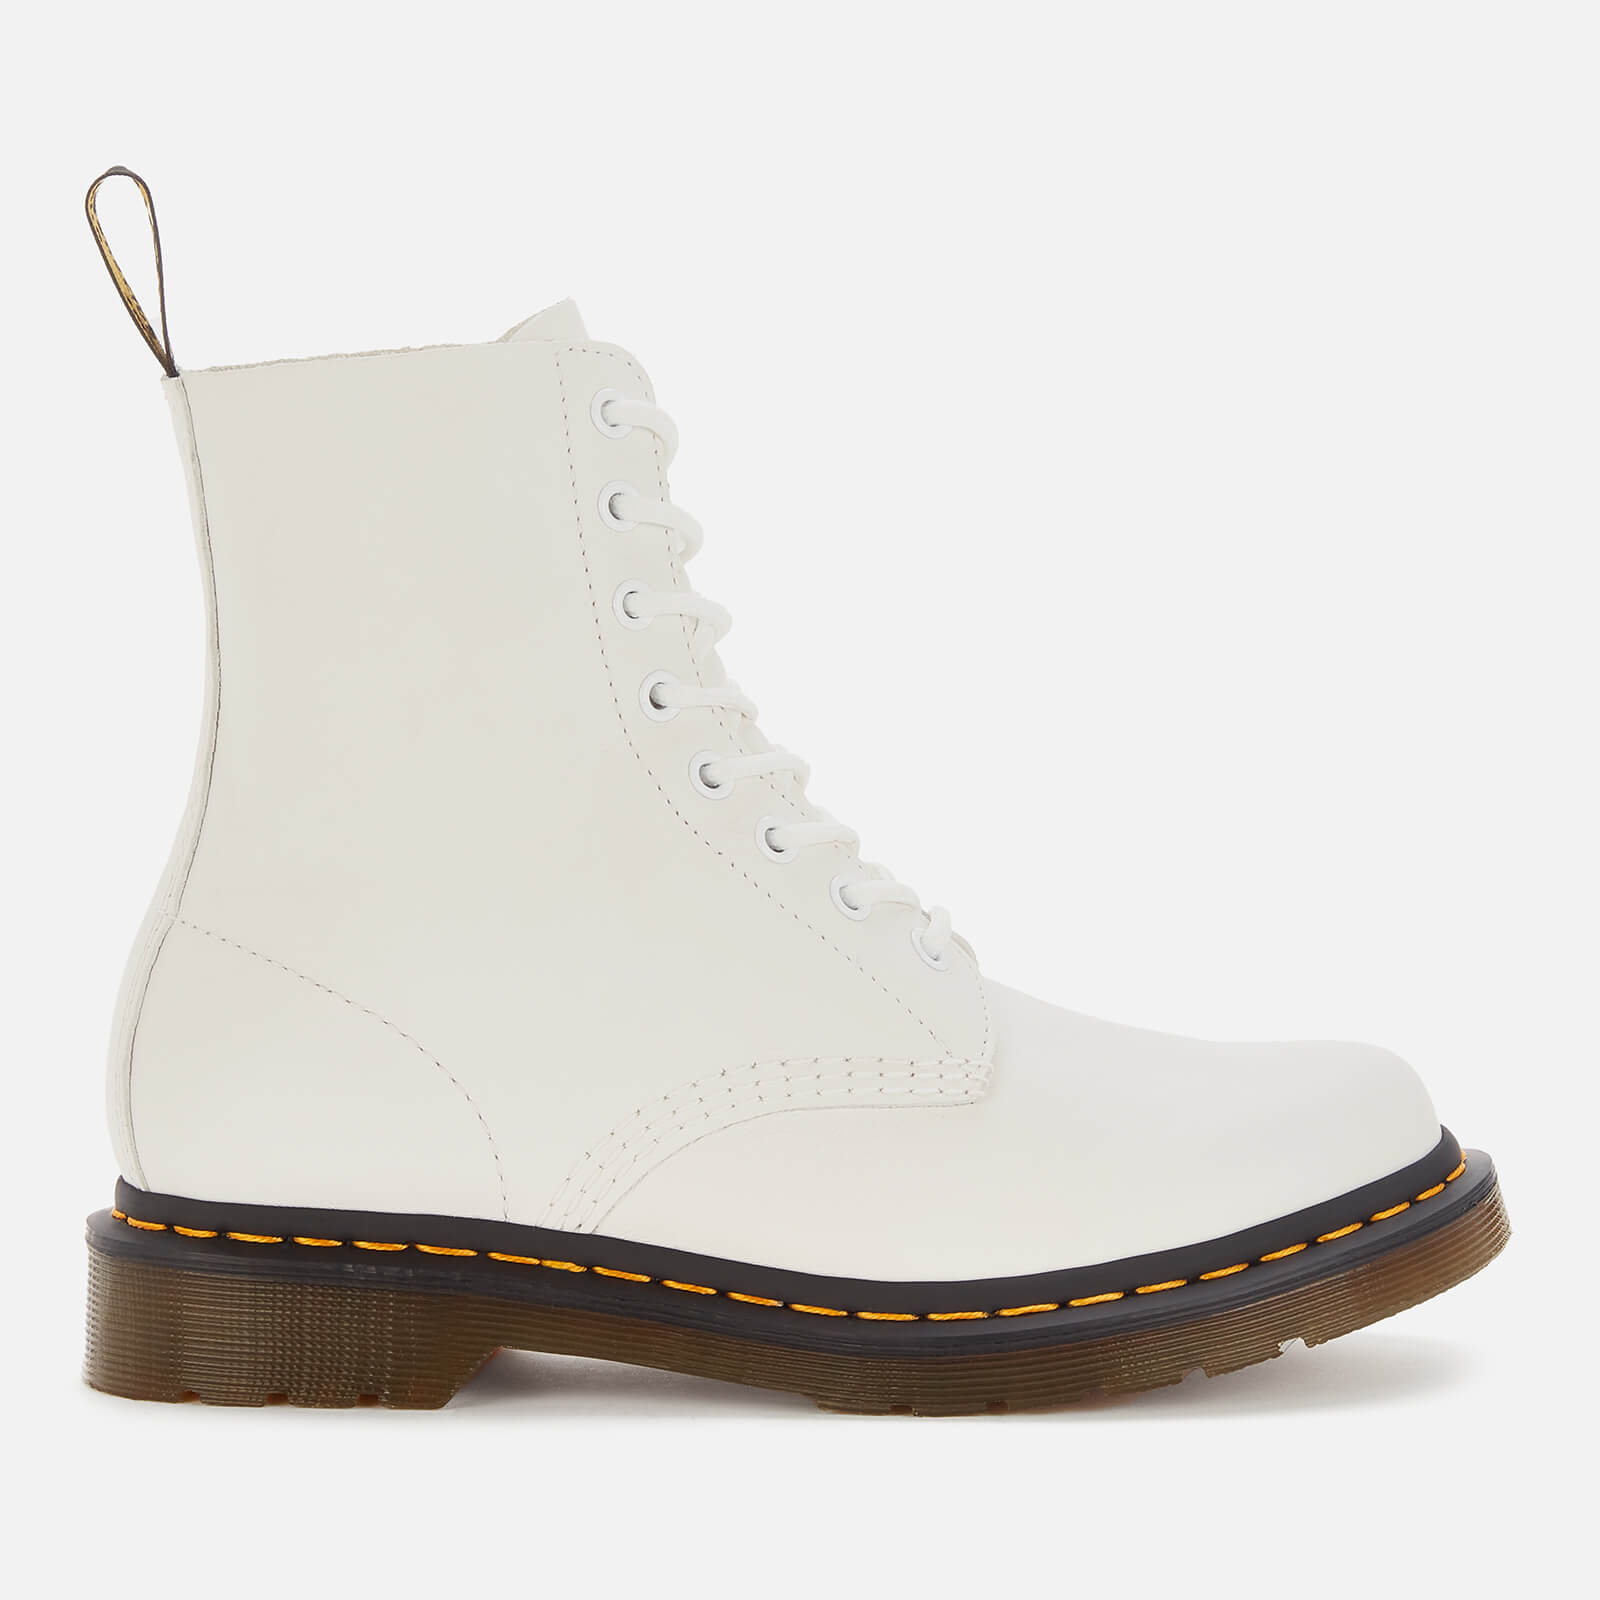 Dr. Martens Women's 1460 Pascal Virginia Leather 8-Eye Boots - Optical White - Uk 8